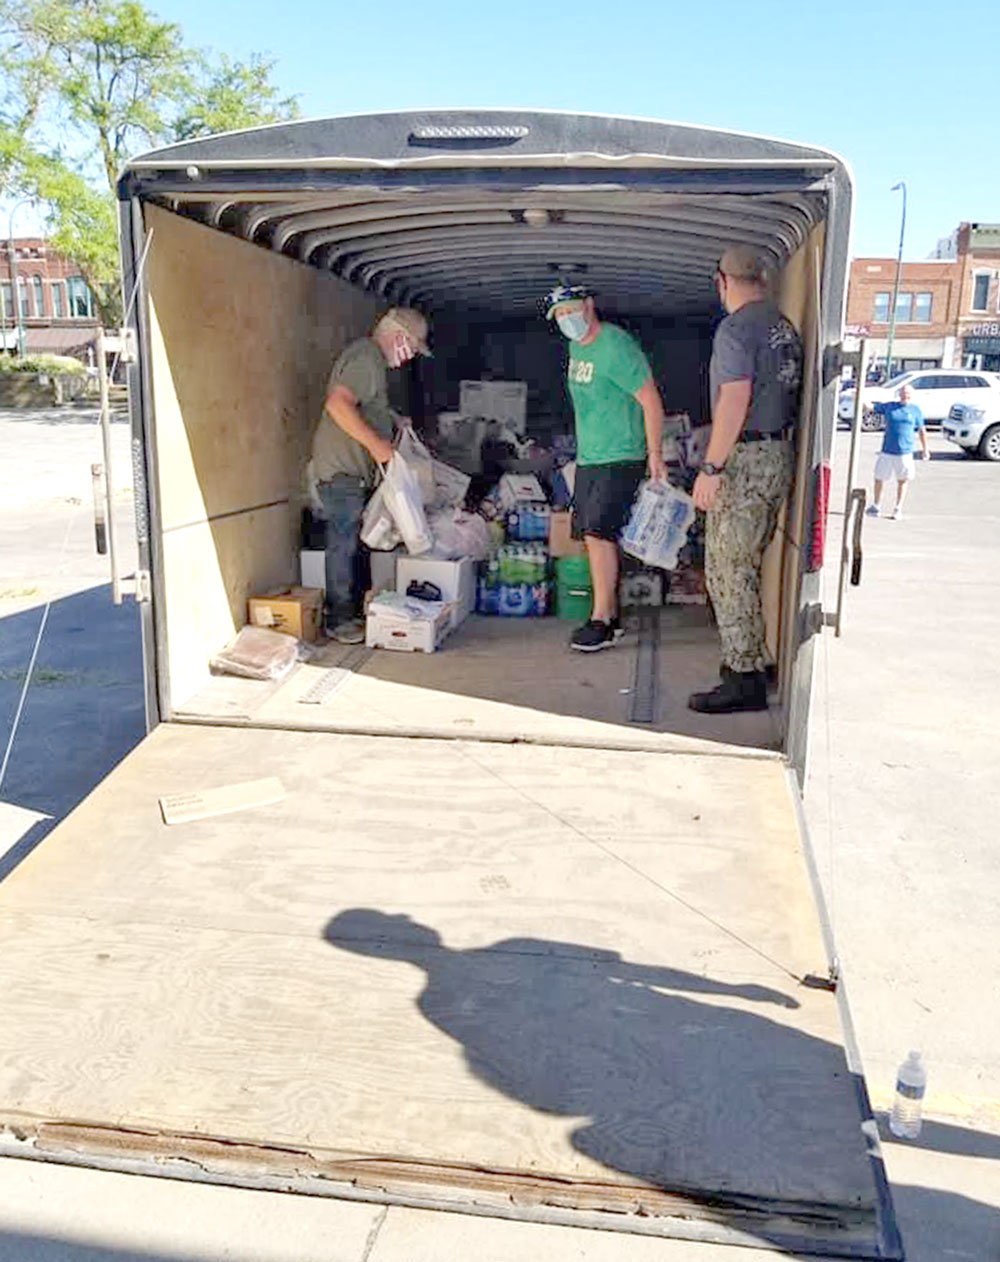 Charles City community sends trailer full of supplies to derecho victims; will do it again